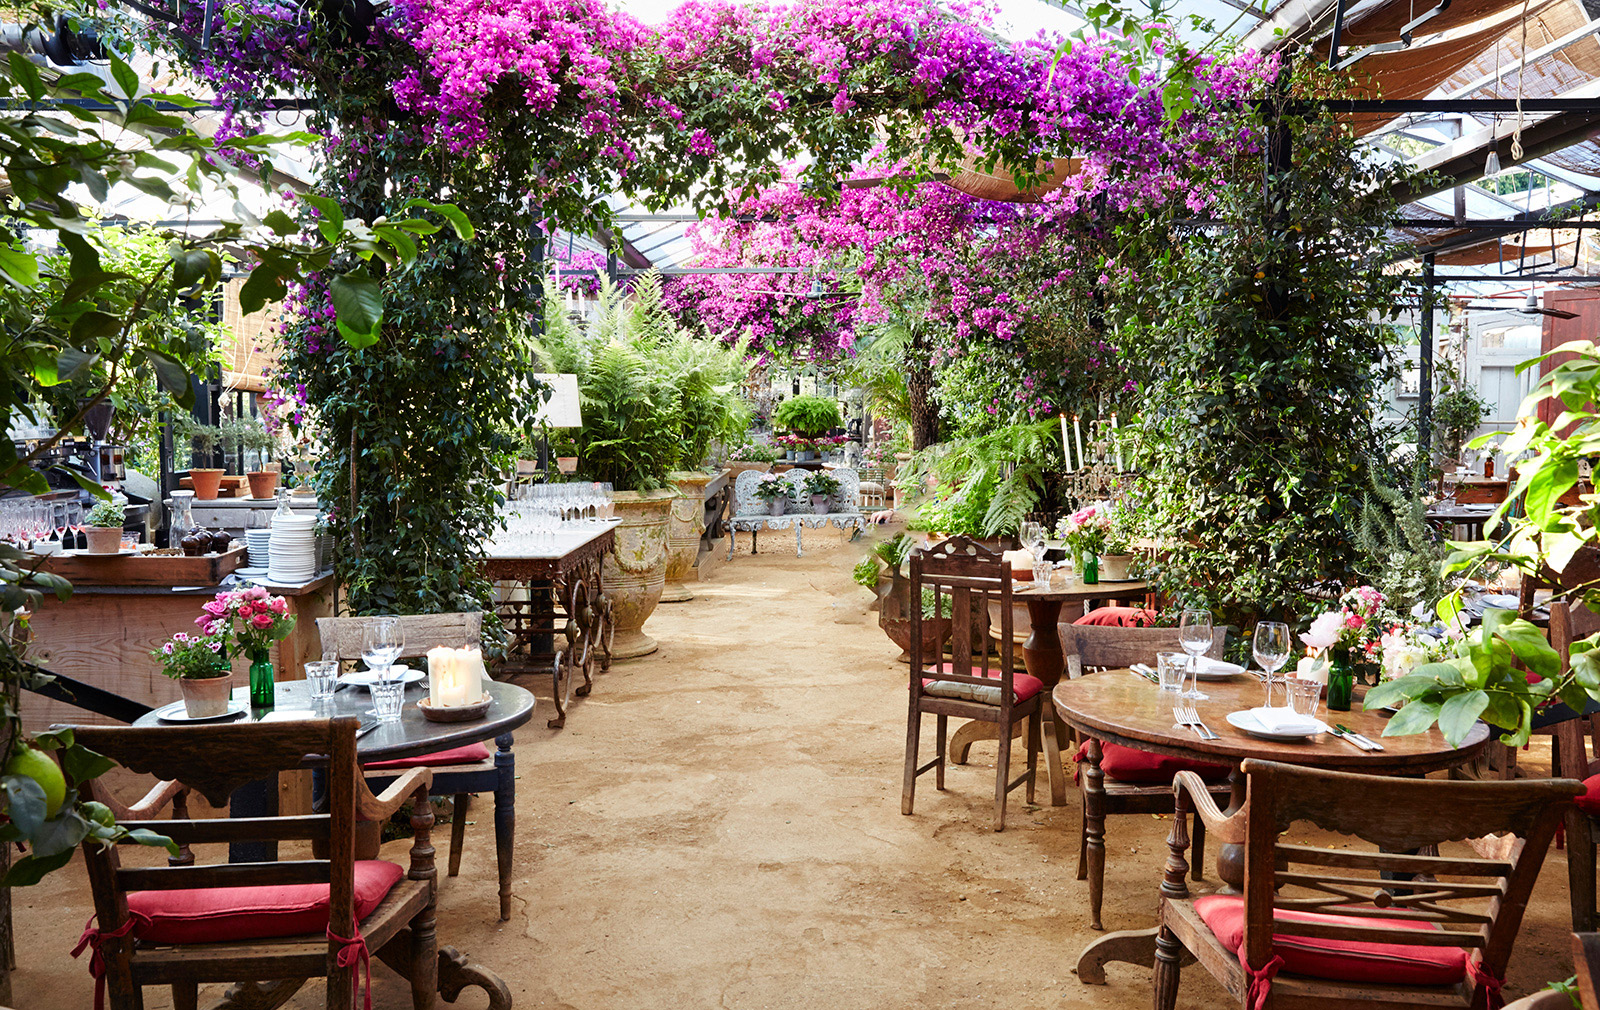 London restaurants with gardens – Petersham Nurseries